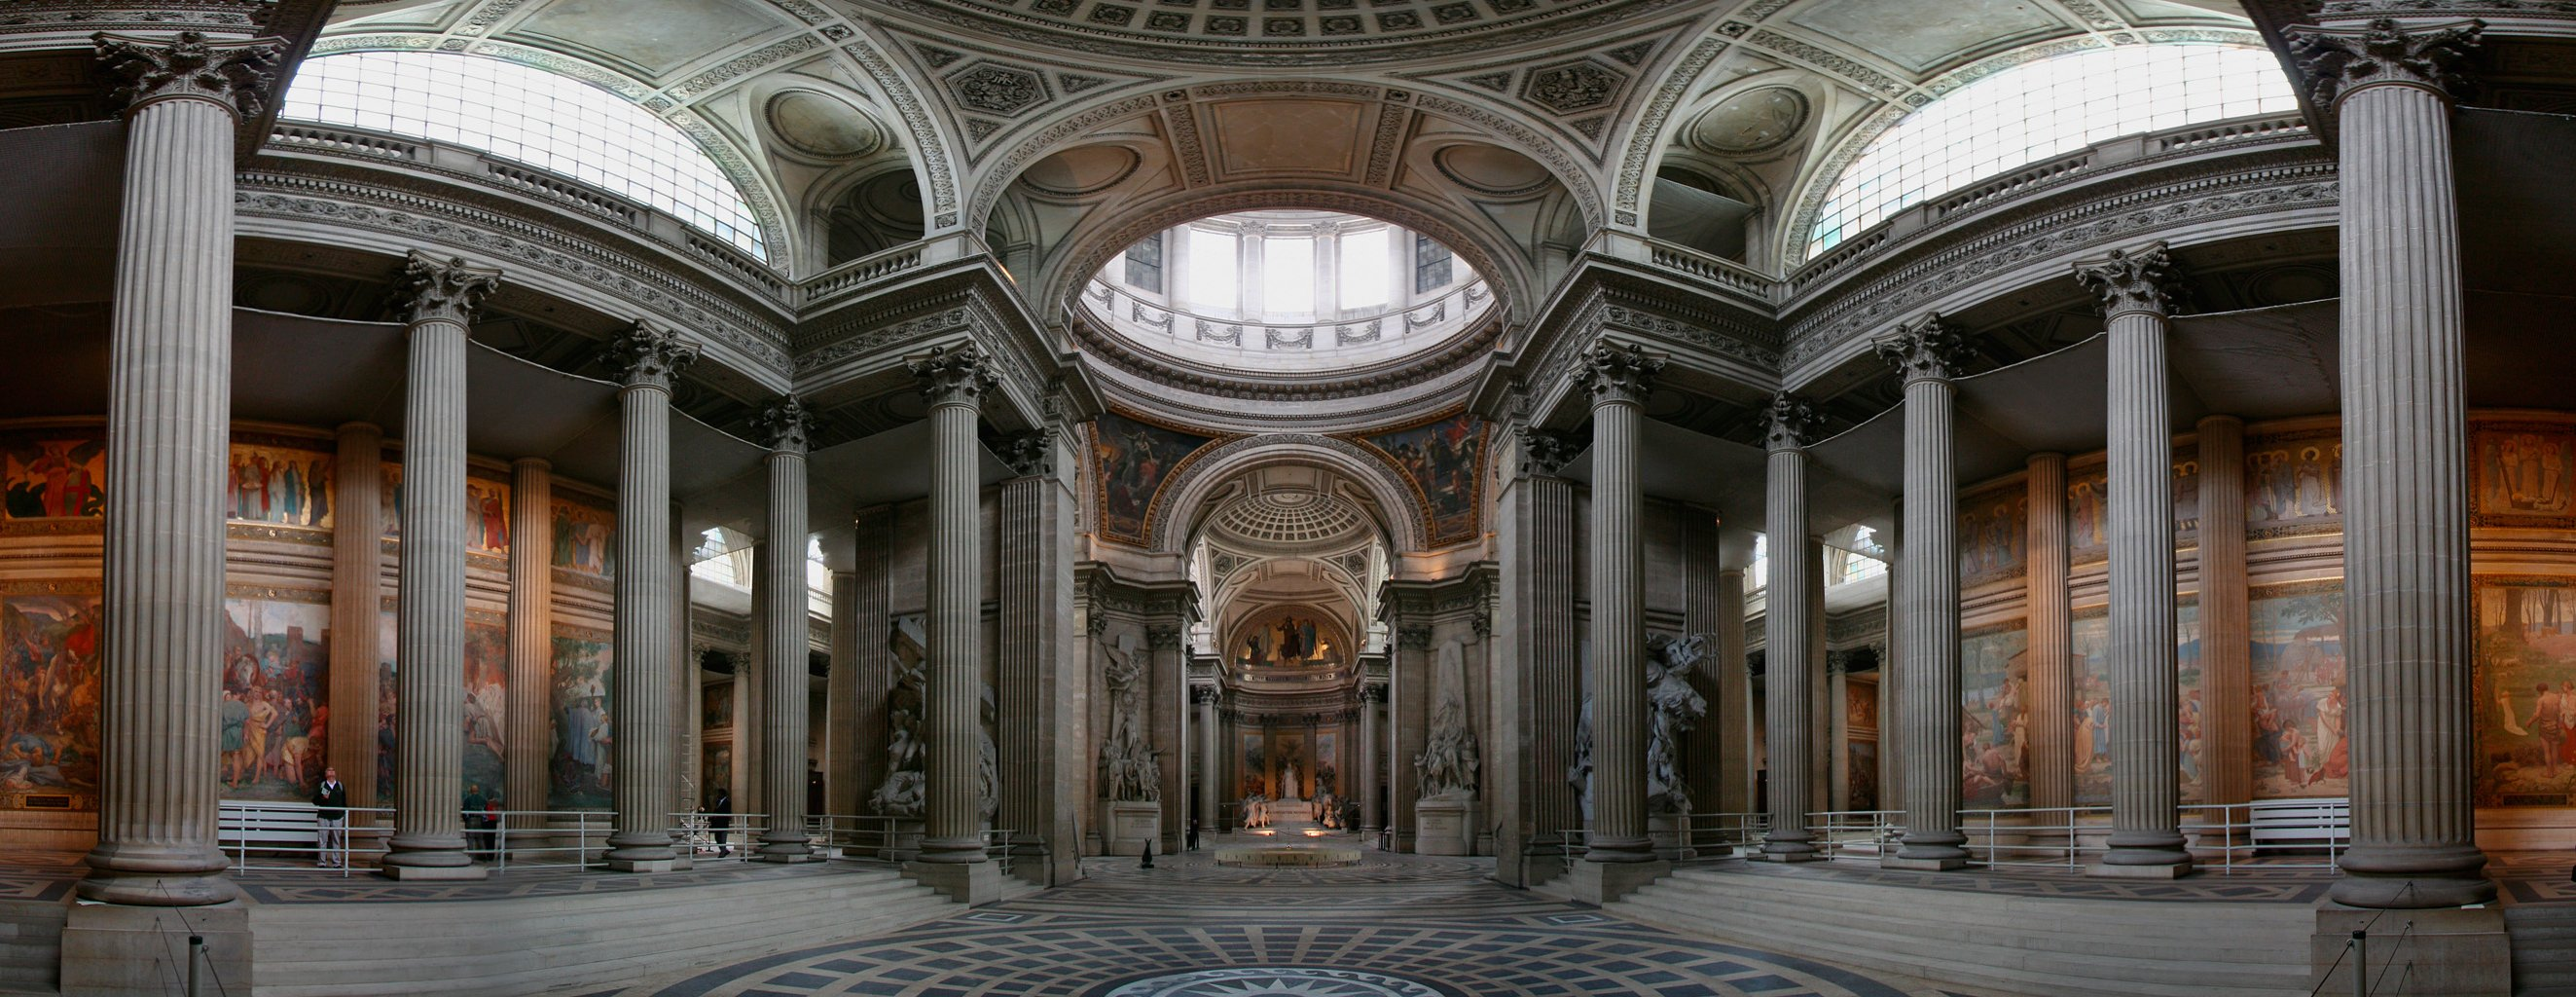 Pantheon_wider_centered